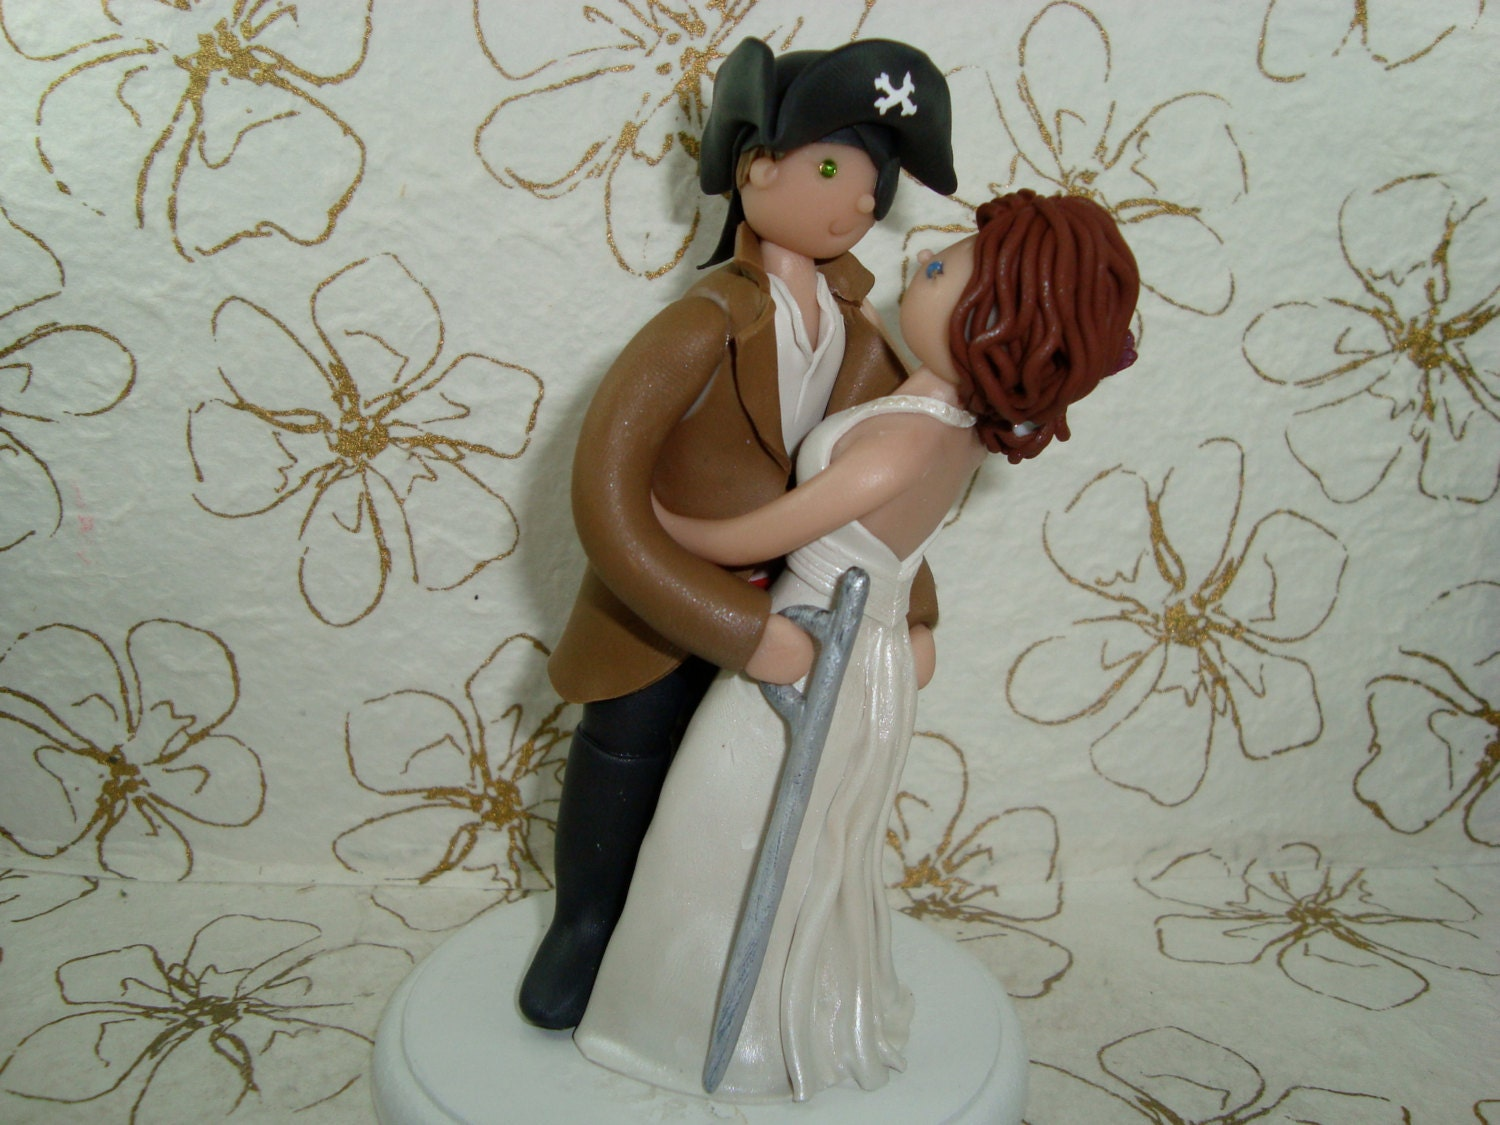 pirate wedding cake topper customized pirate wedding cake topper by mudcards on etsy 18622